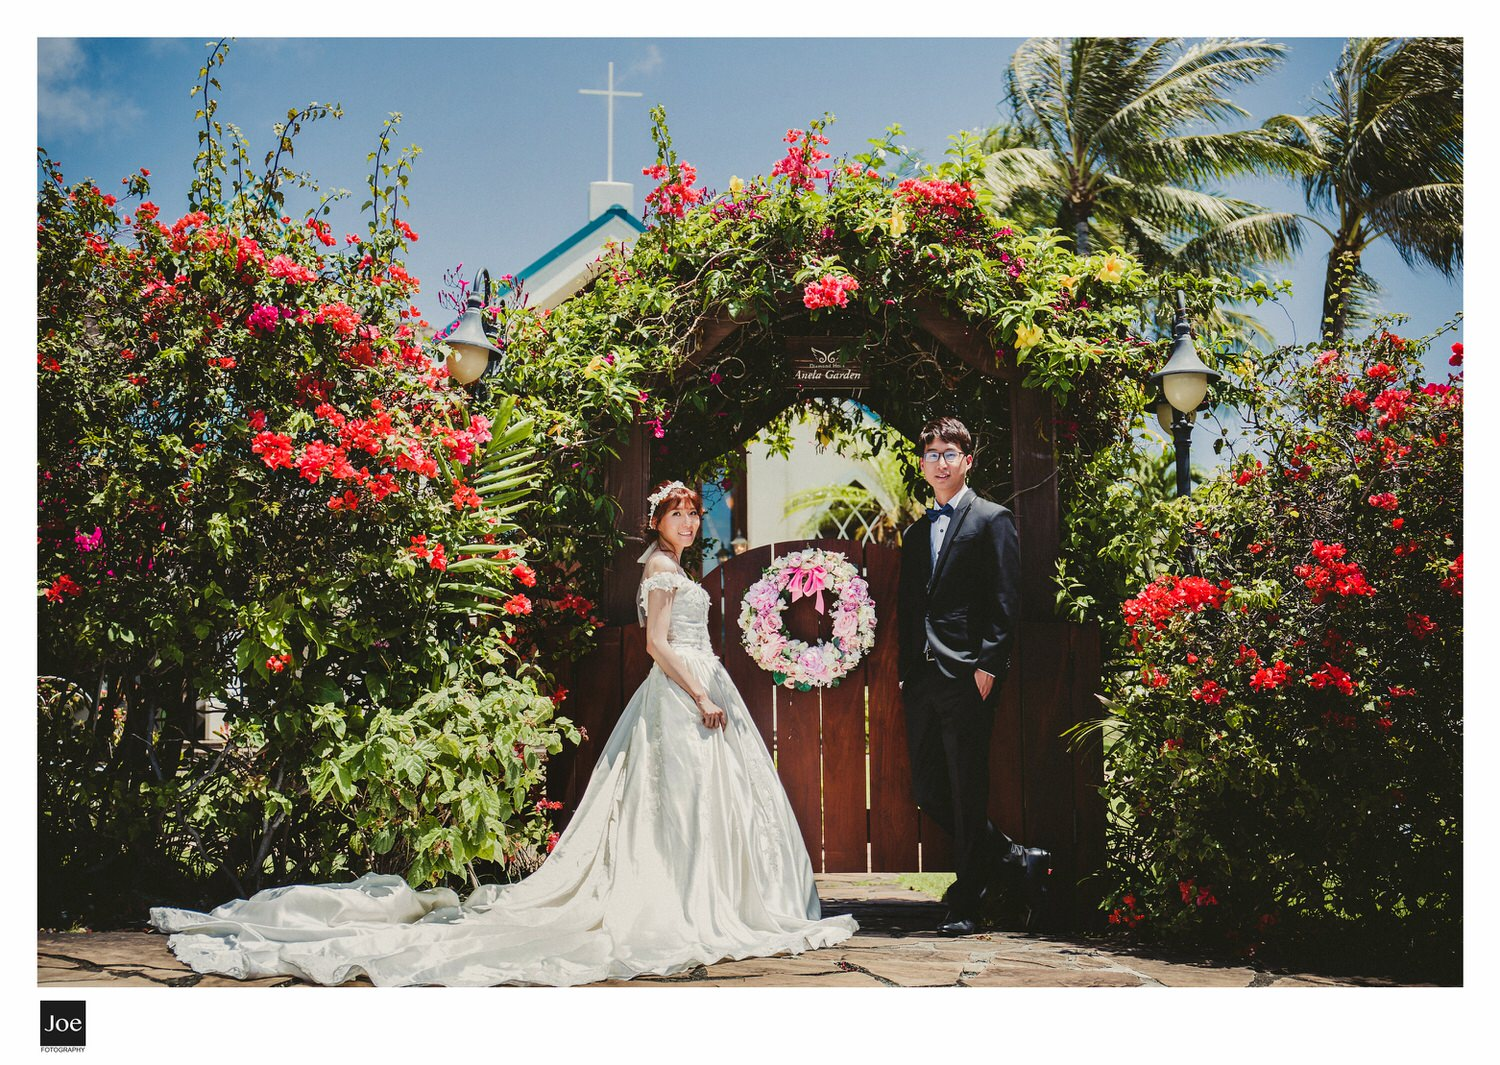 013-diamondhead-anela-gardens-hawaii-pre-wedding-tiffany-tony-joe-fotography.jpg